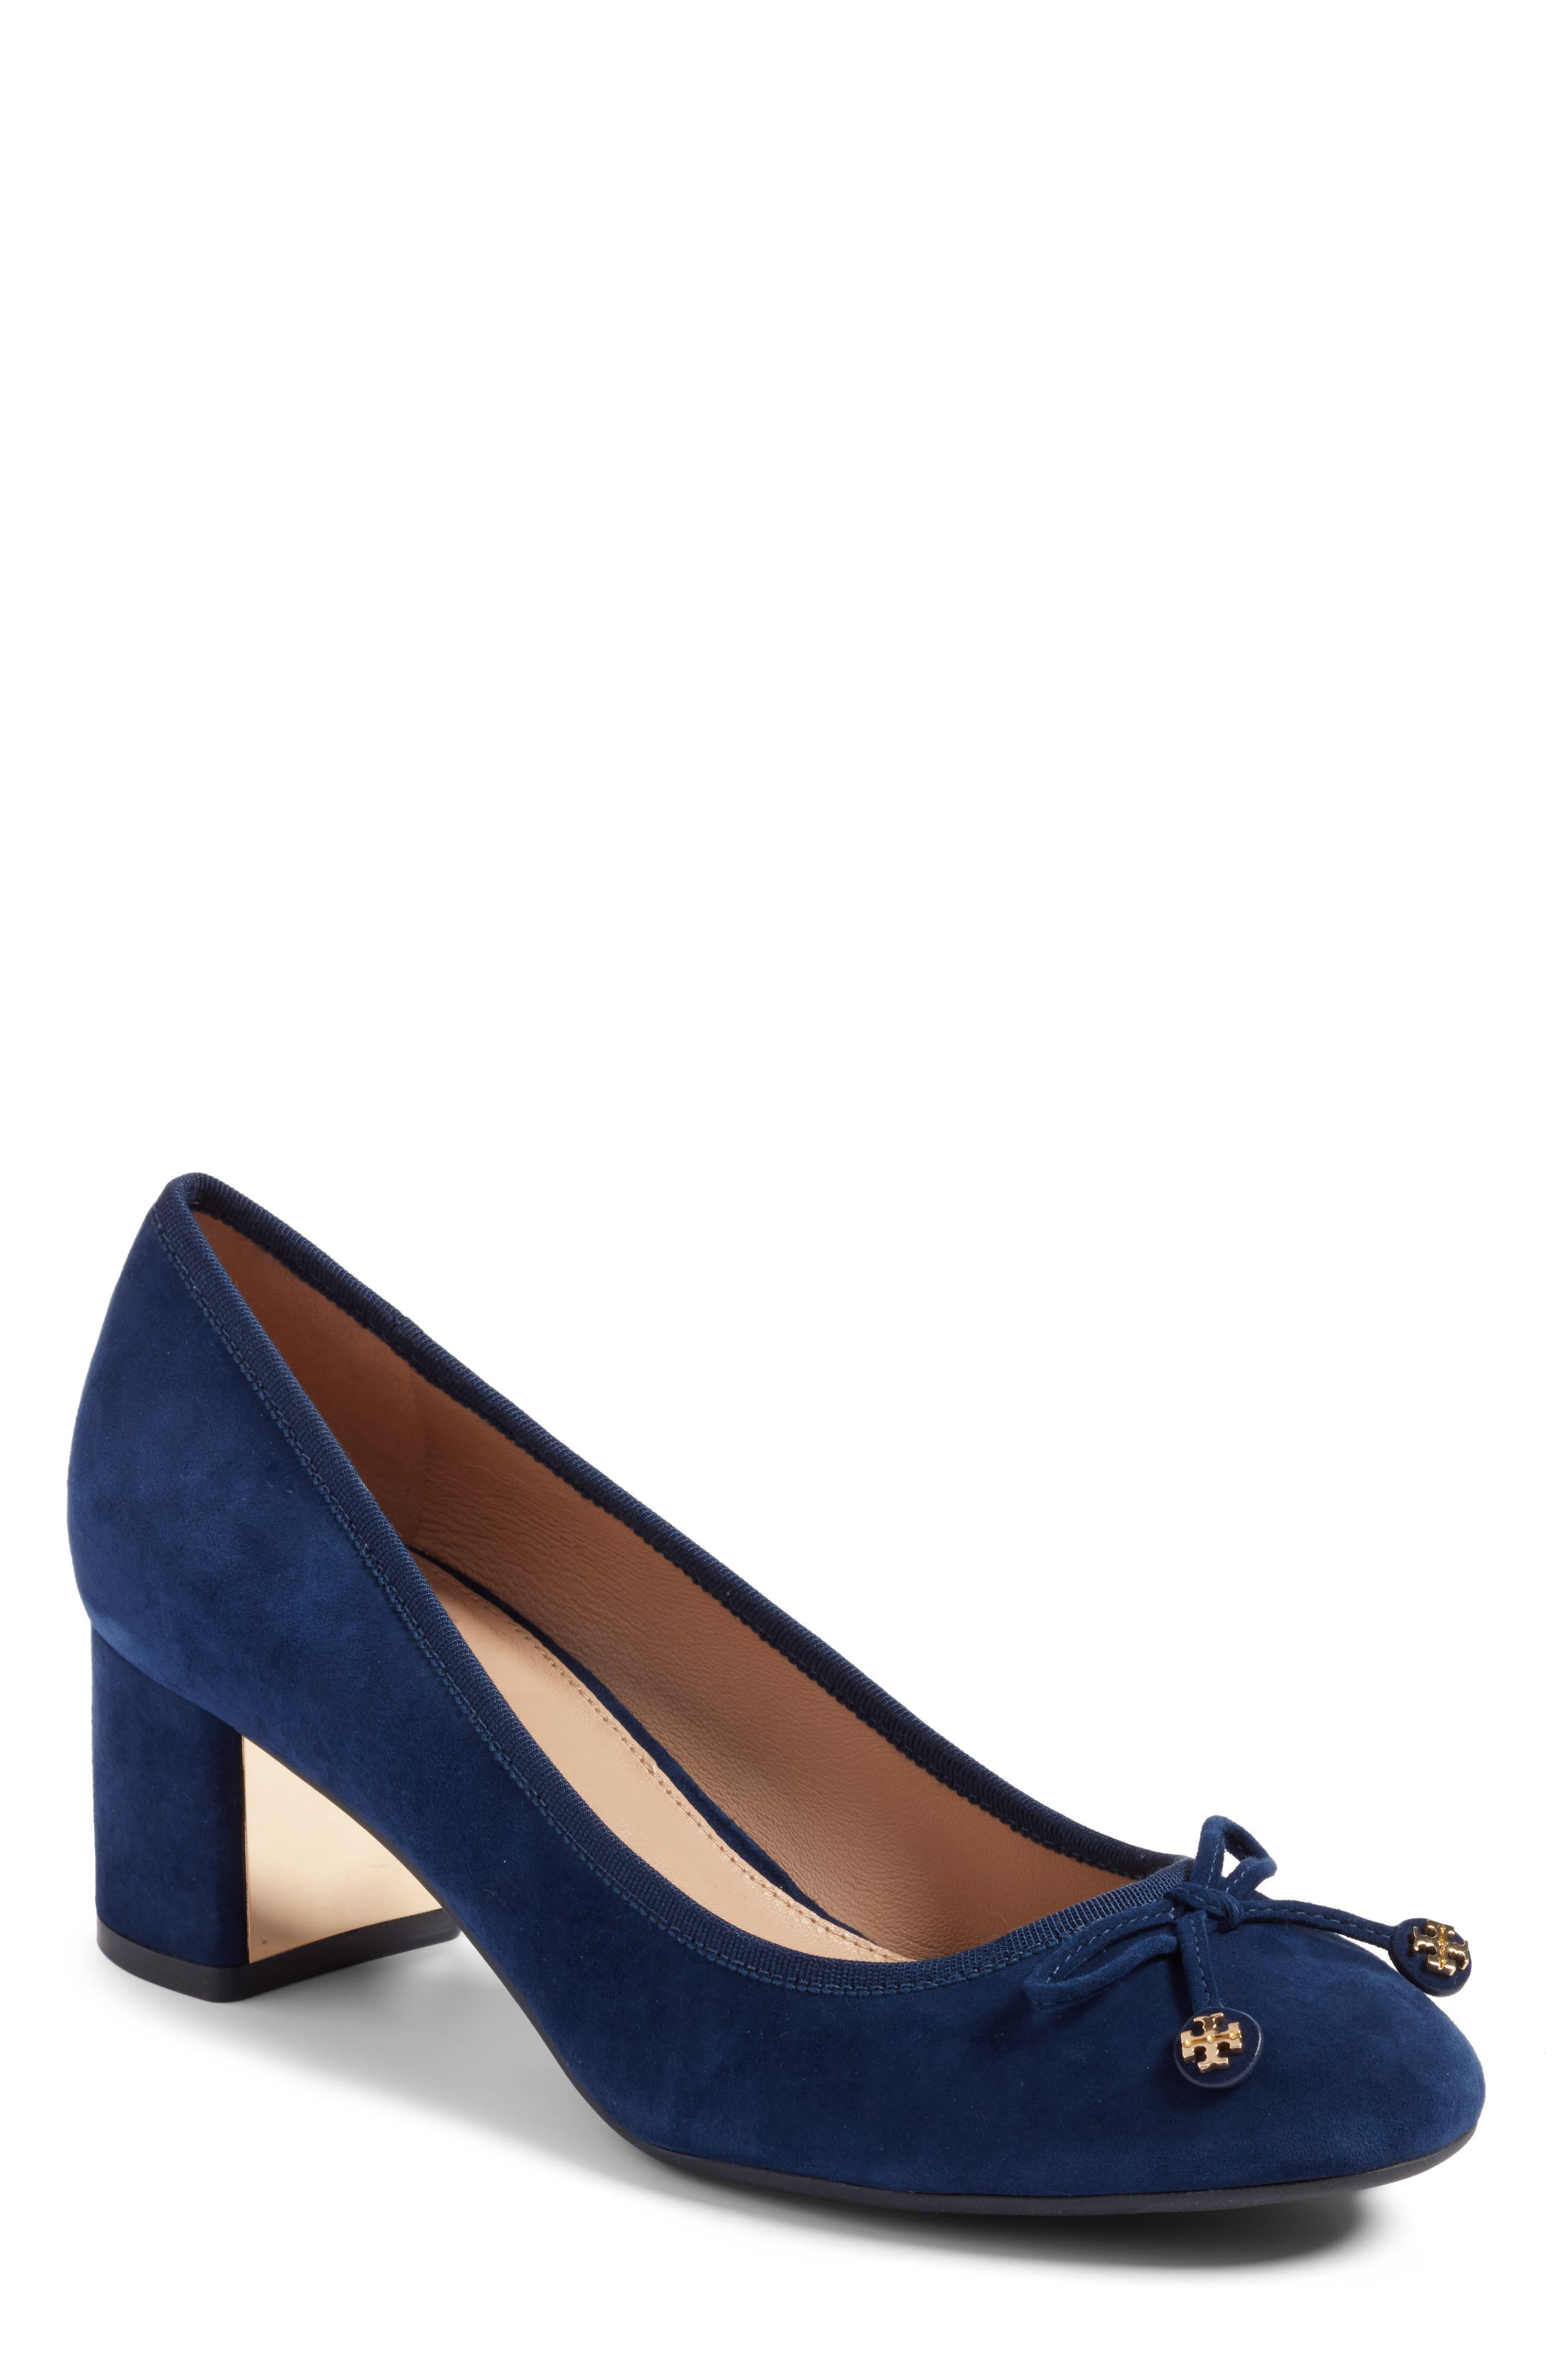 Tory Burch Laila Ballet Slipper Pump (Women)